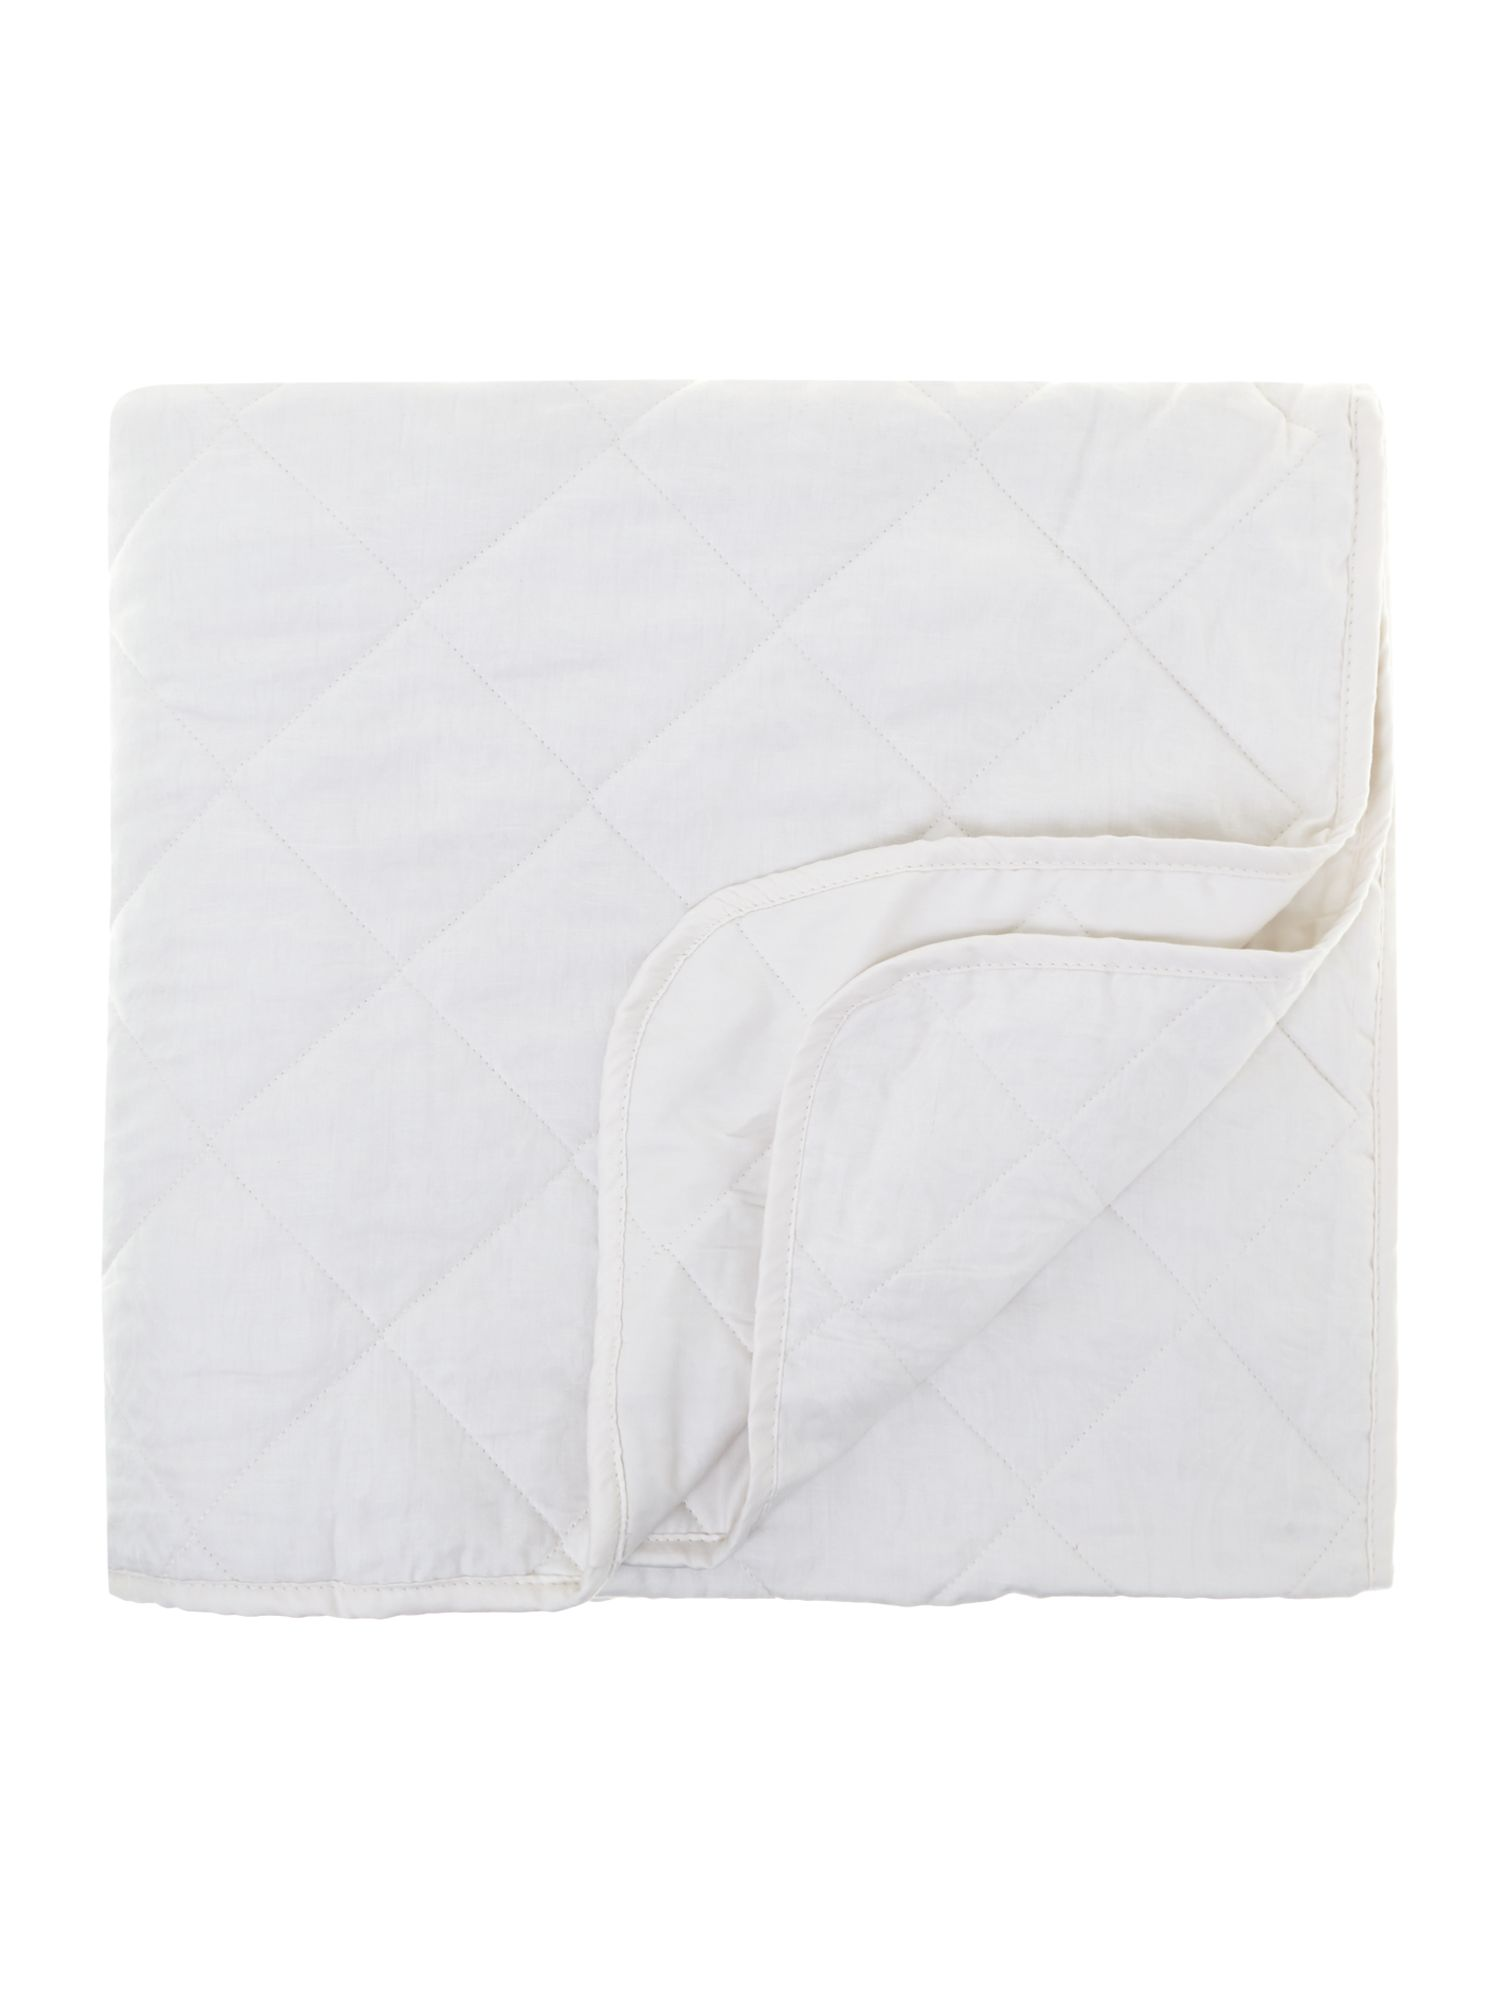 Damask quilted bedspread cream